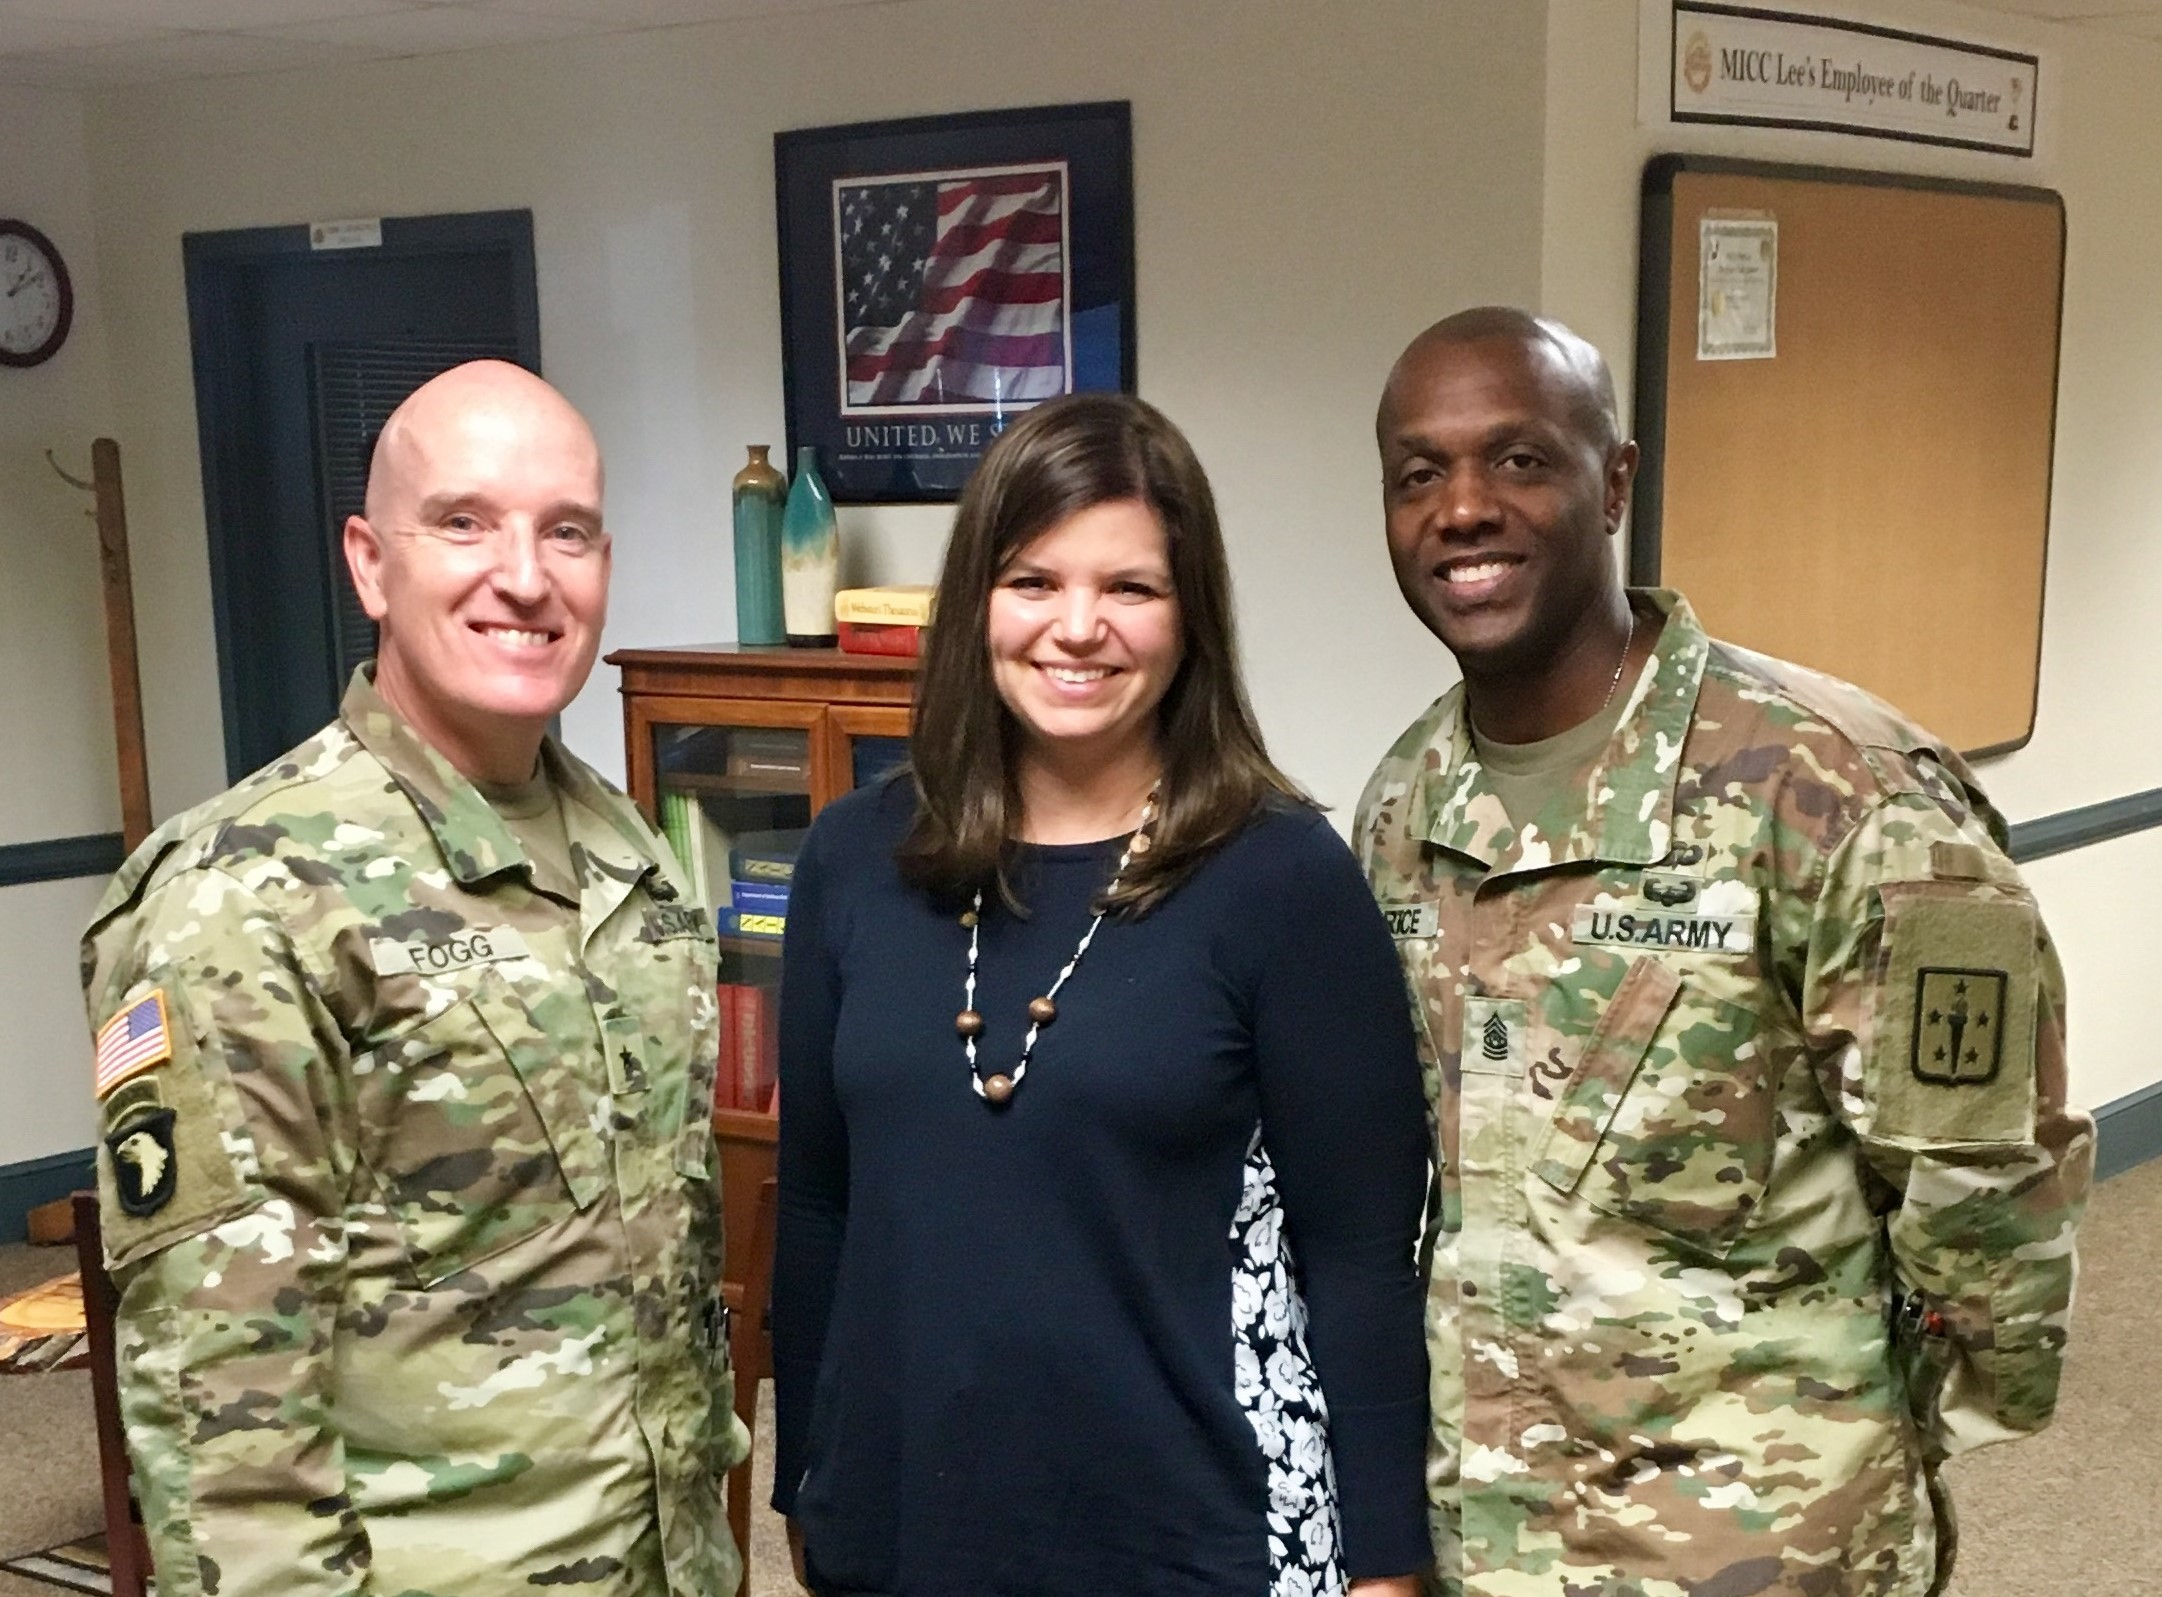 Brig. Gen. Rodney Fogg, Quartermaster General and commandant of the Quartermaster School at Fort Lee, Virginia, and Command Sgt. Maj. Sean Rice, Quartermaster Regimental Command Sergeant Major, visited Ms. Rowley at MICC Fort Lee to express their gratitude for her organization's support.